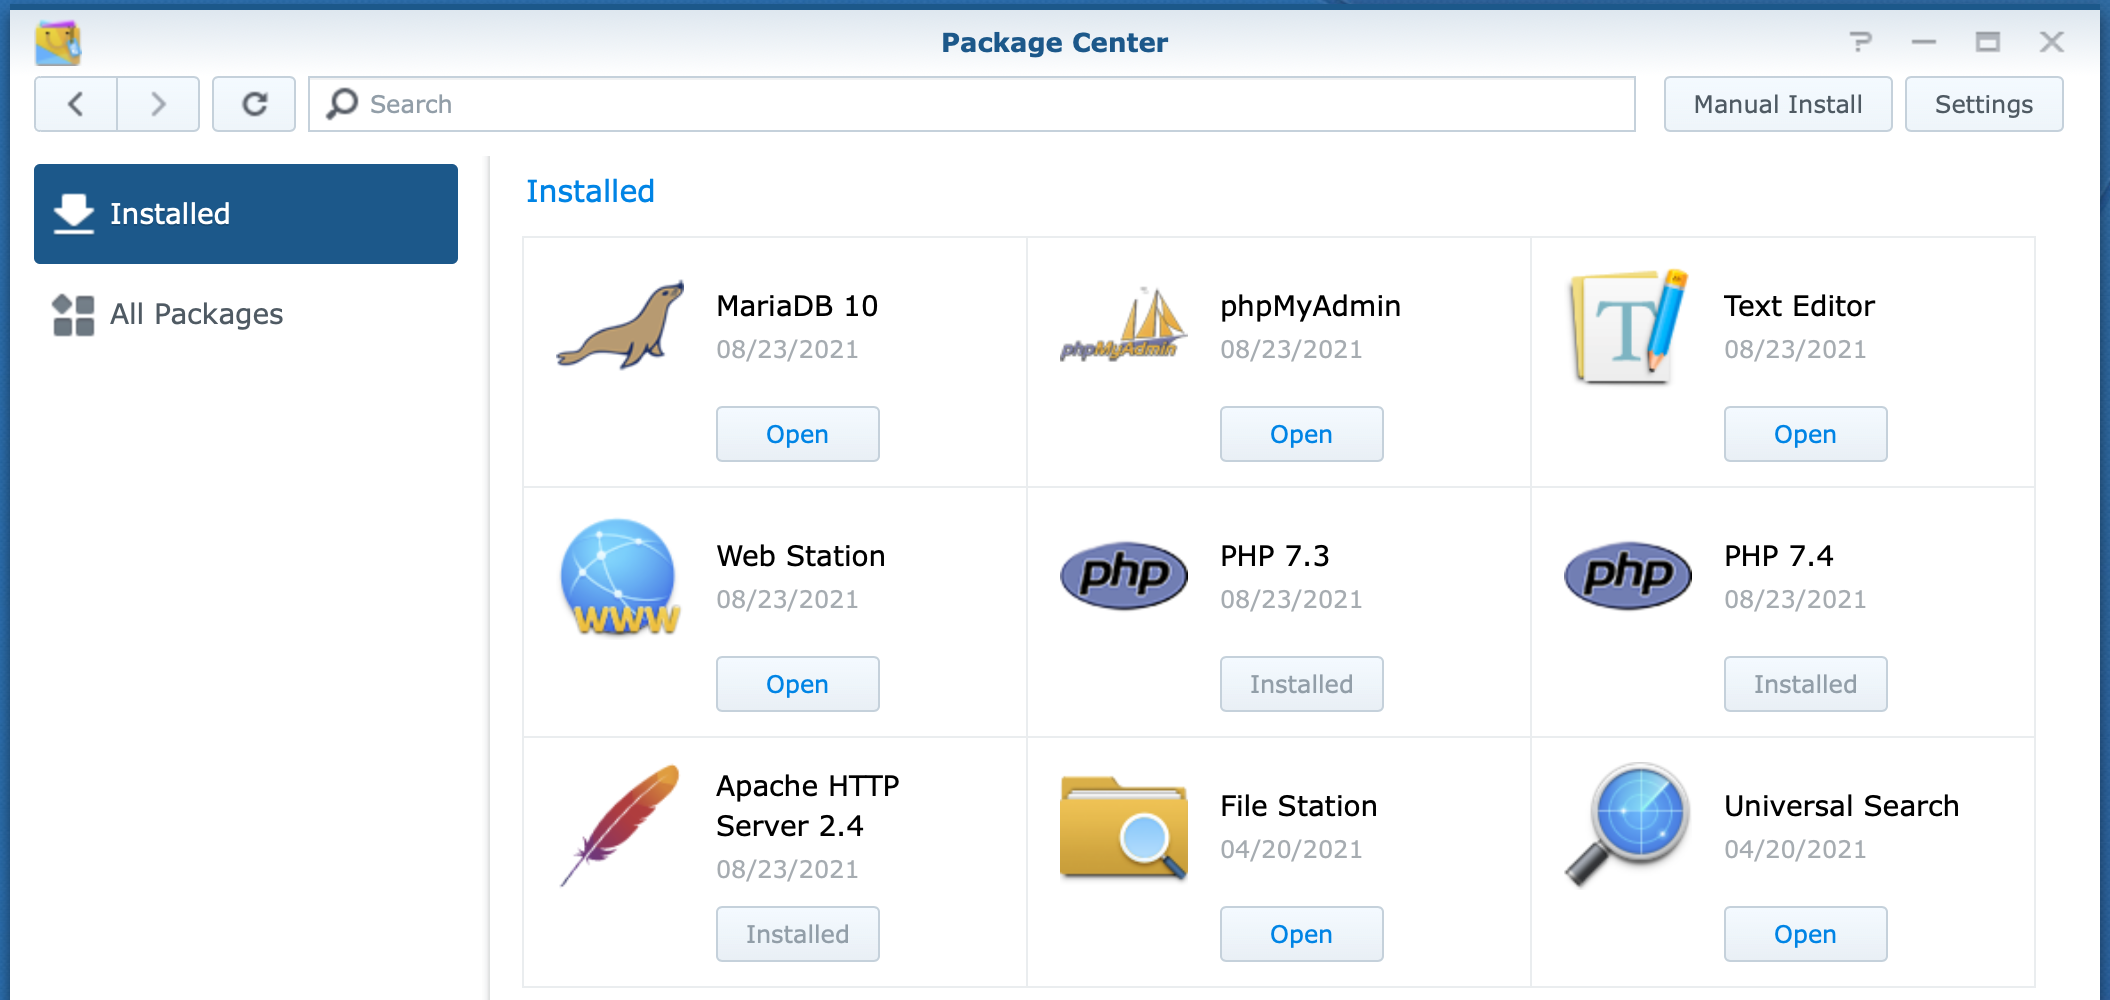 synology, package center, installed packages, dsm6, install wordpress on synology